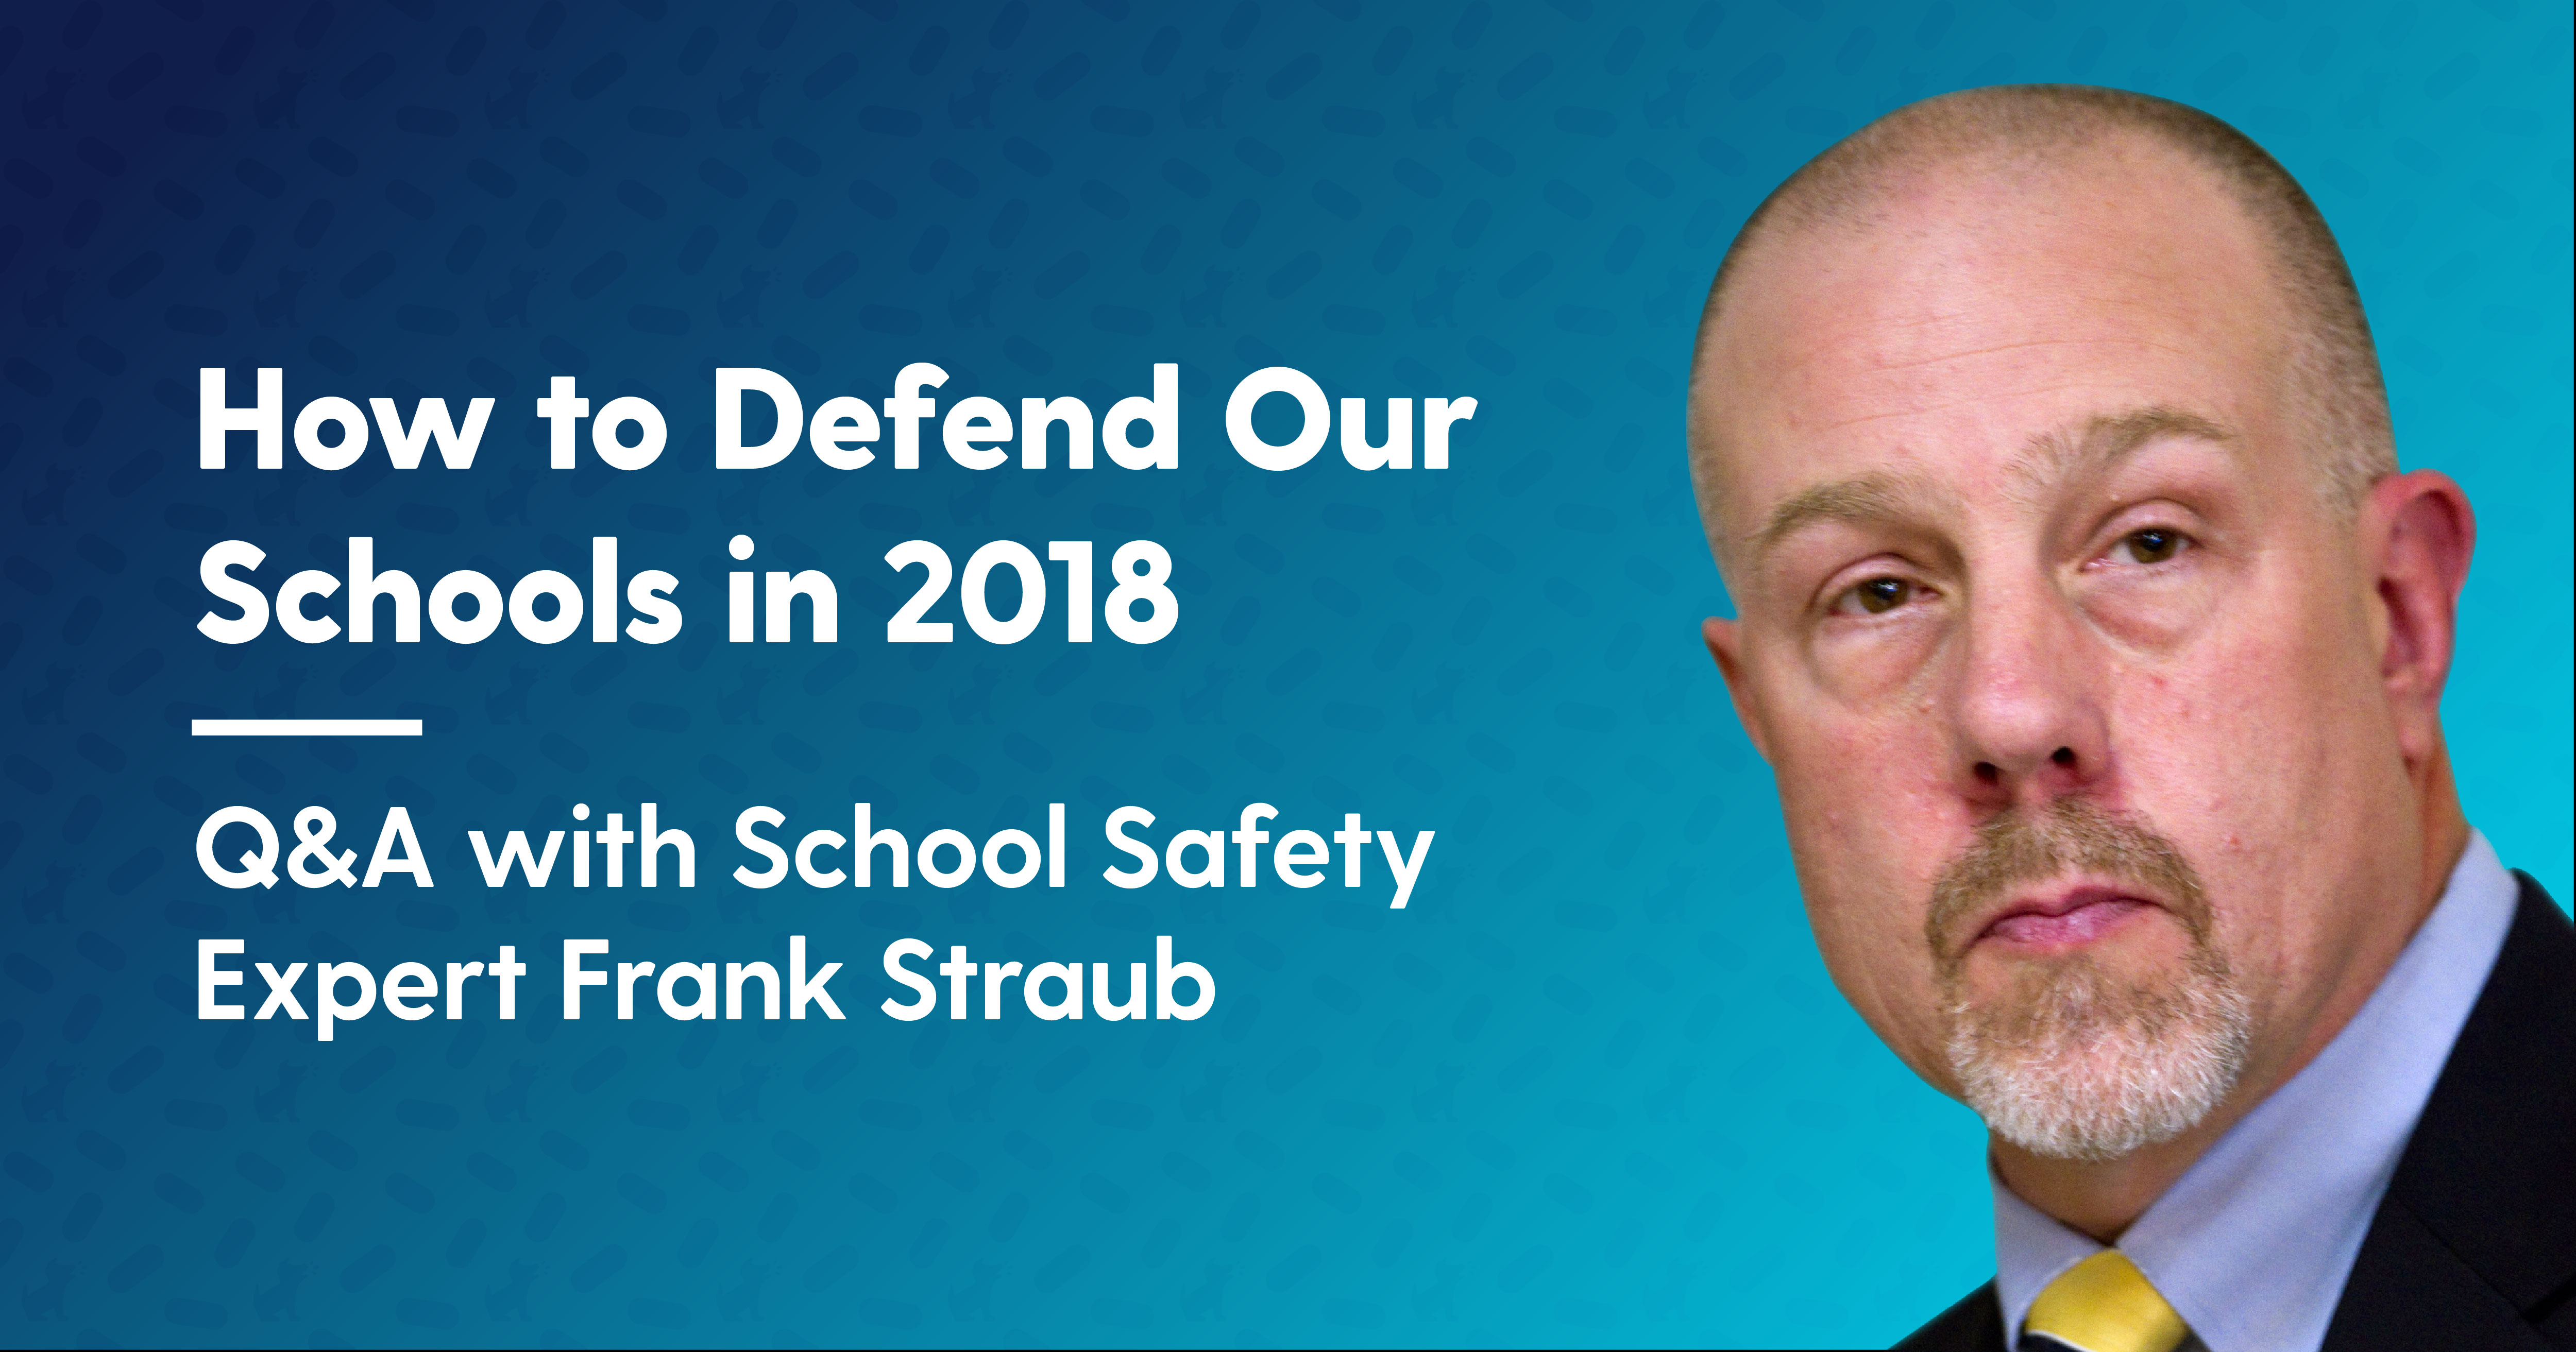 Defend Our Schools in 2018: Q&A with School Safety Expert Frank Straub